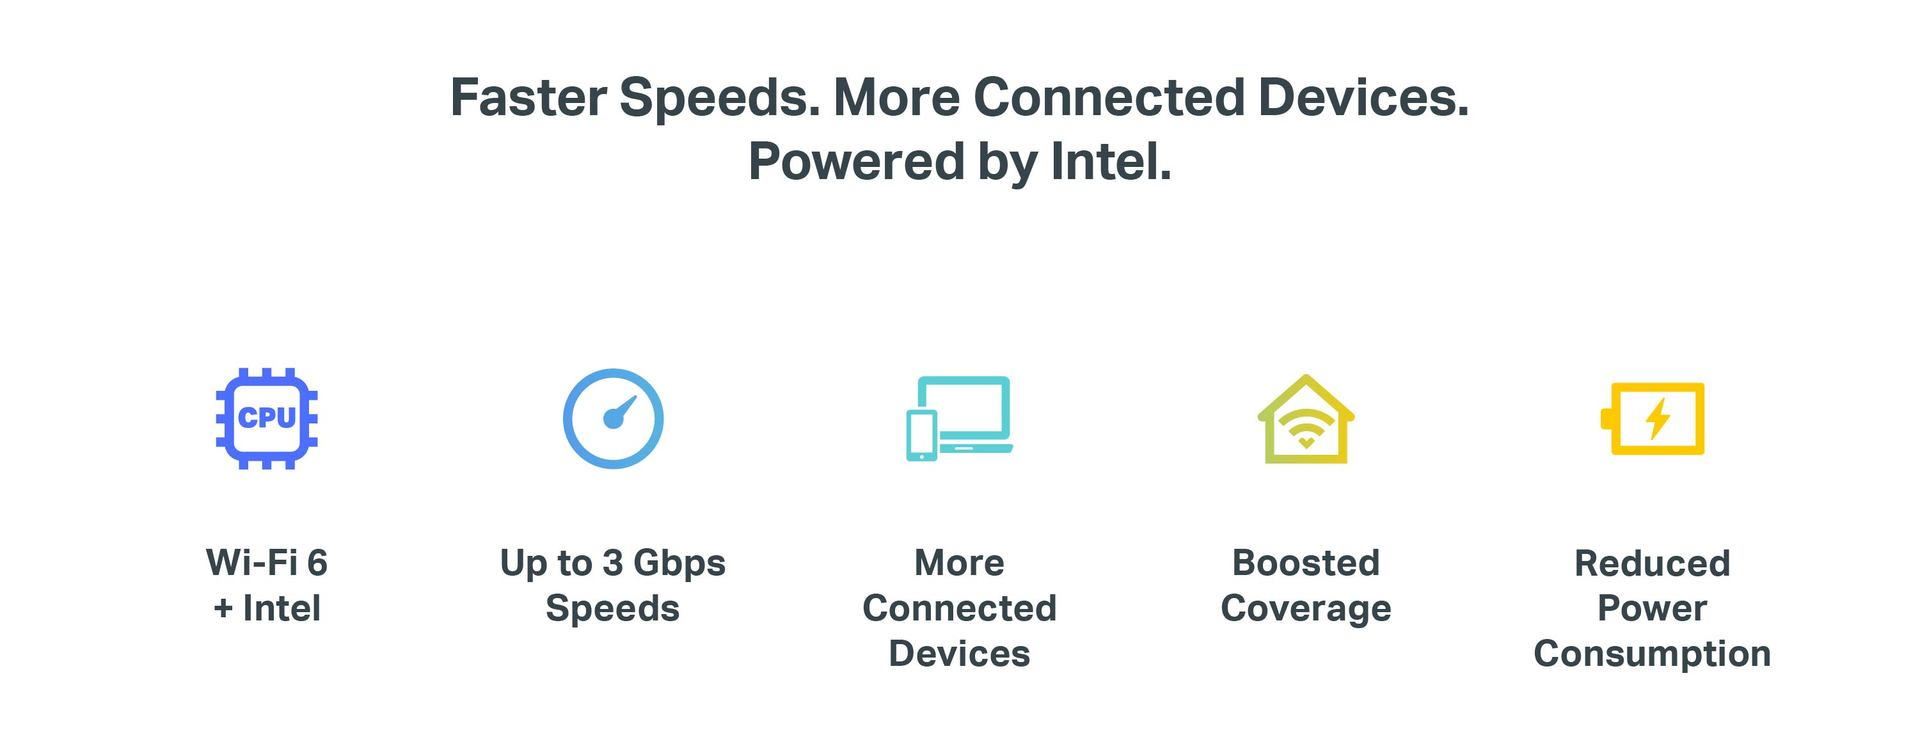 Faster Speeds. More Connected Devices. Improved Battery Life for Devices. Powered by Intel.